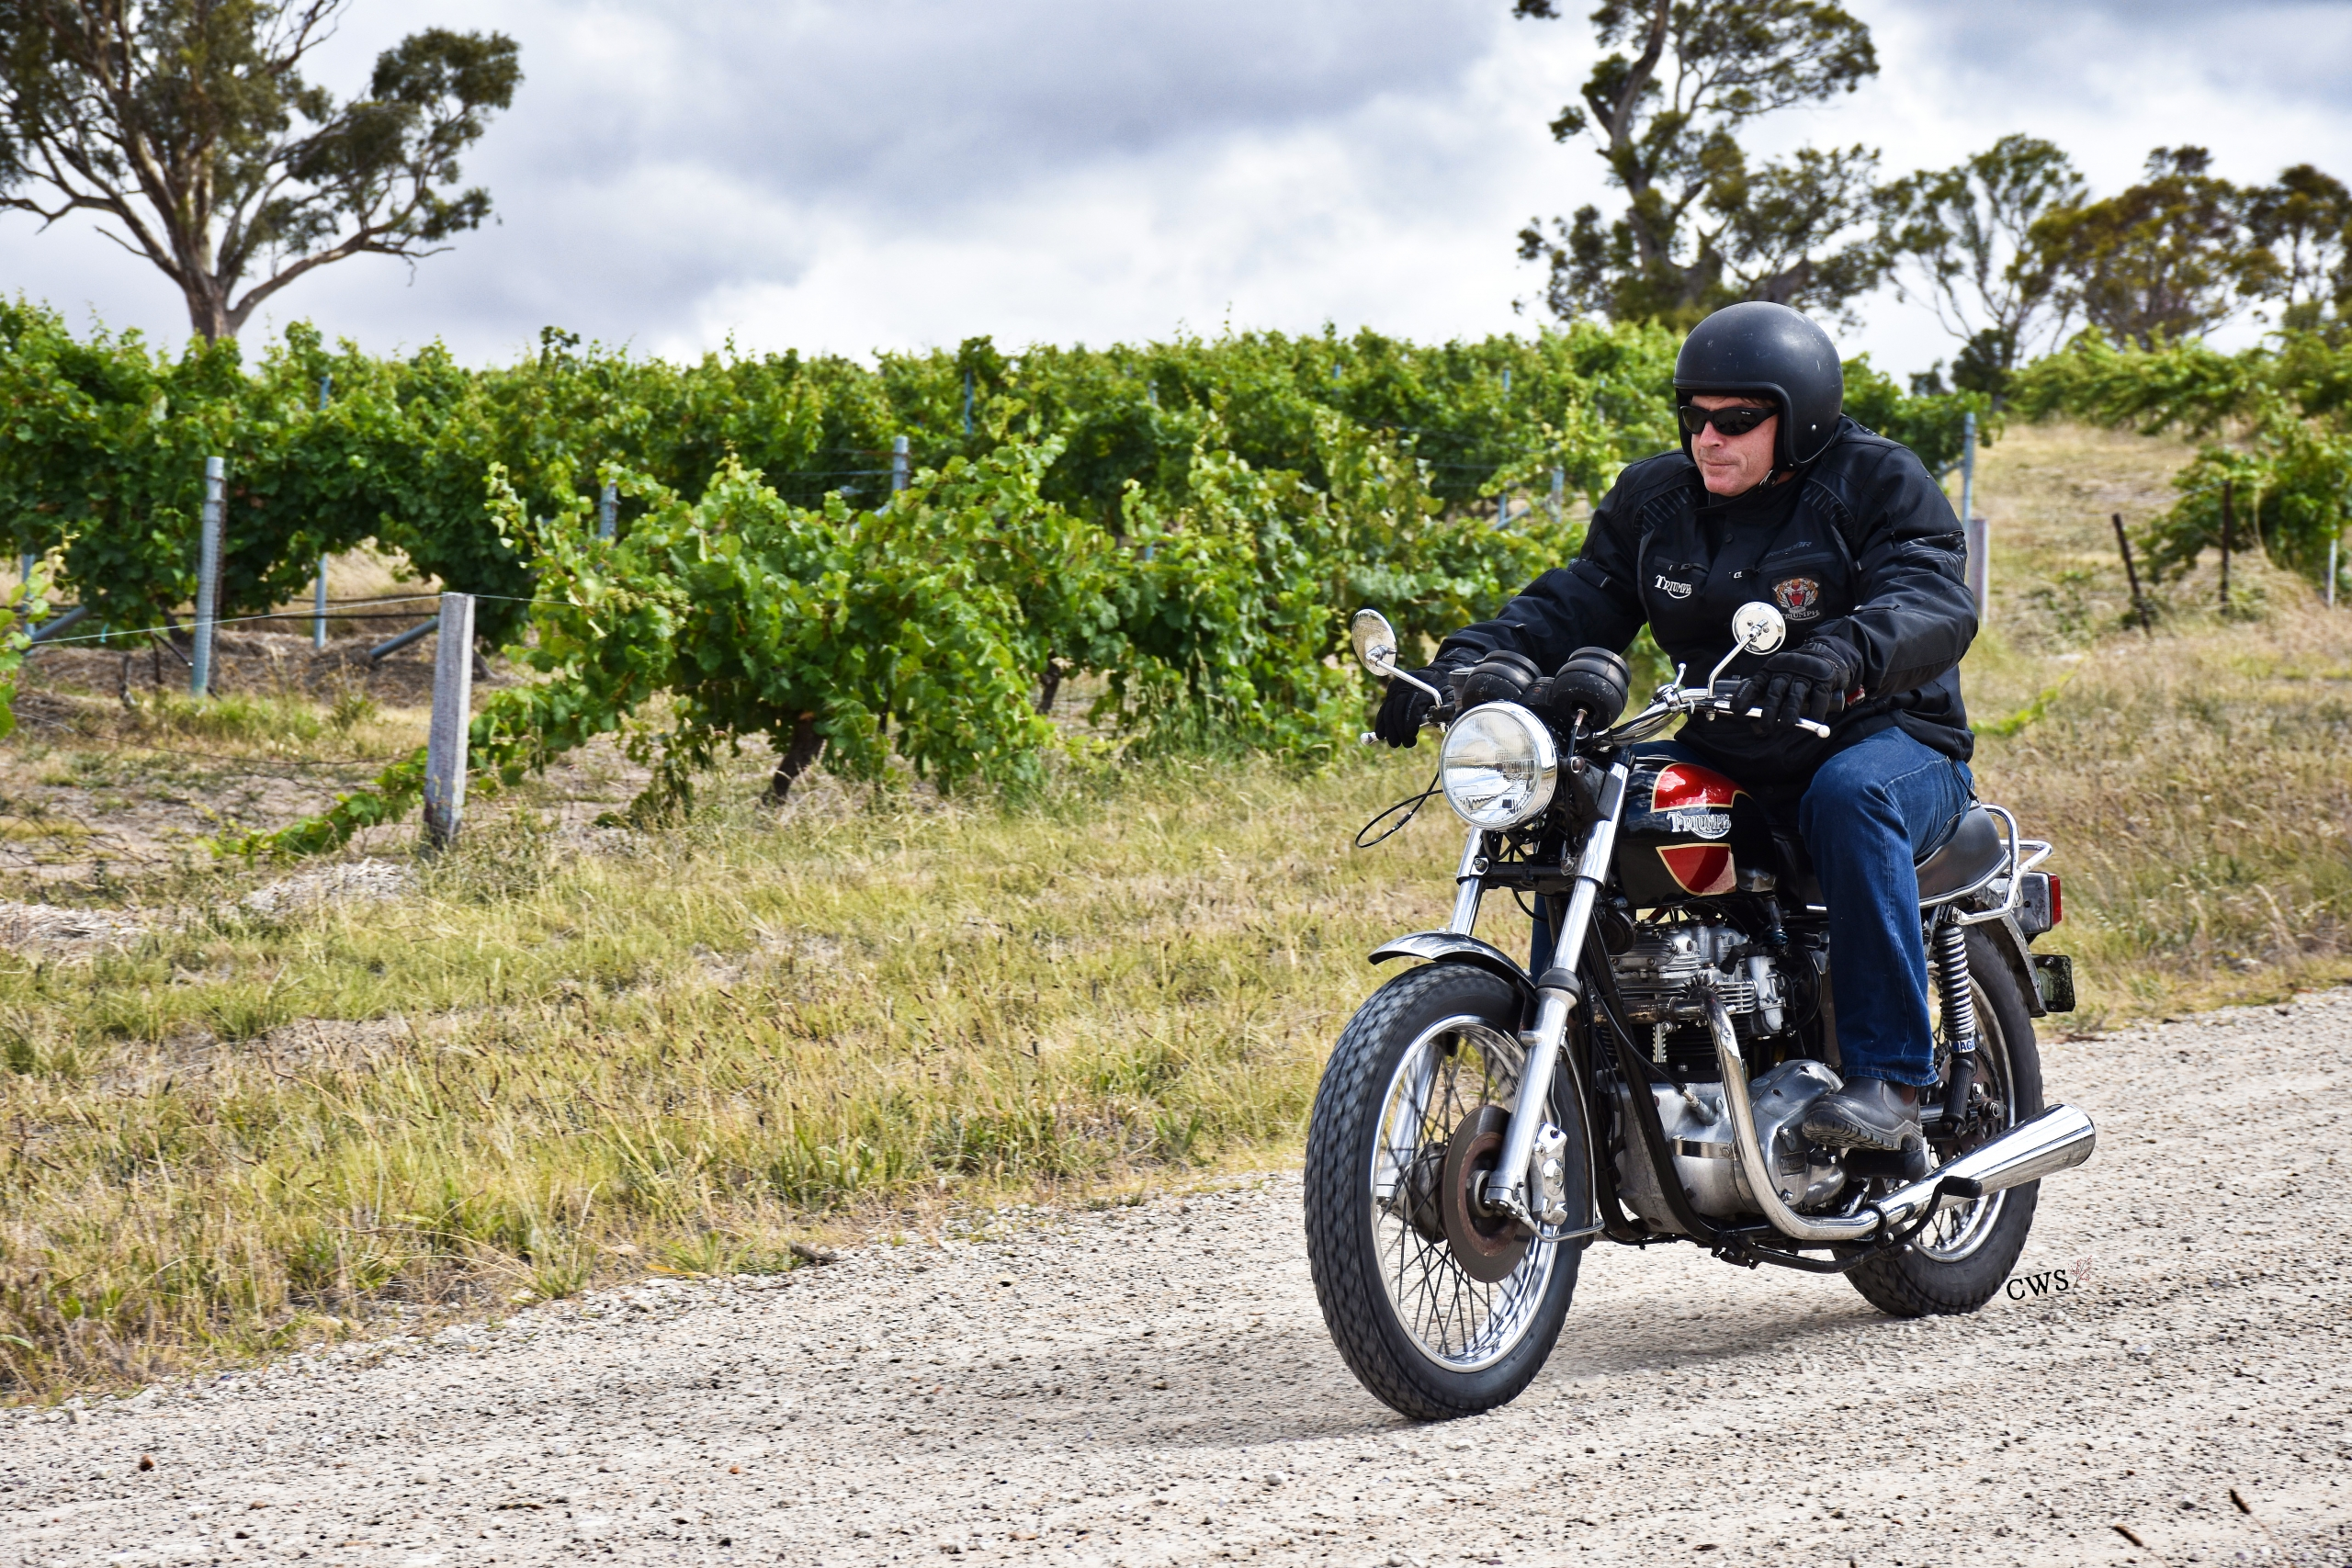 Tim Smith rides his Triumph motorcycle